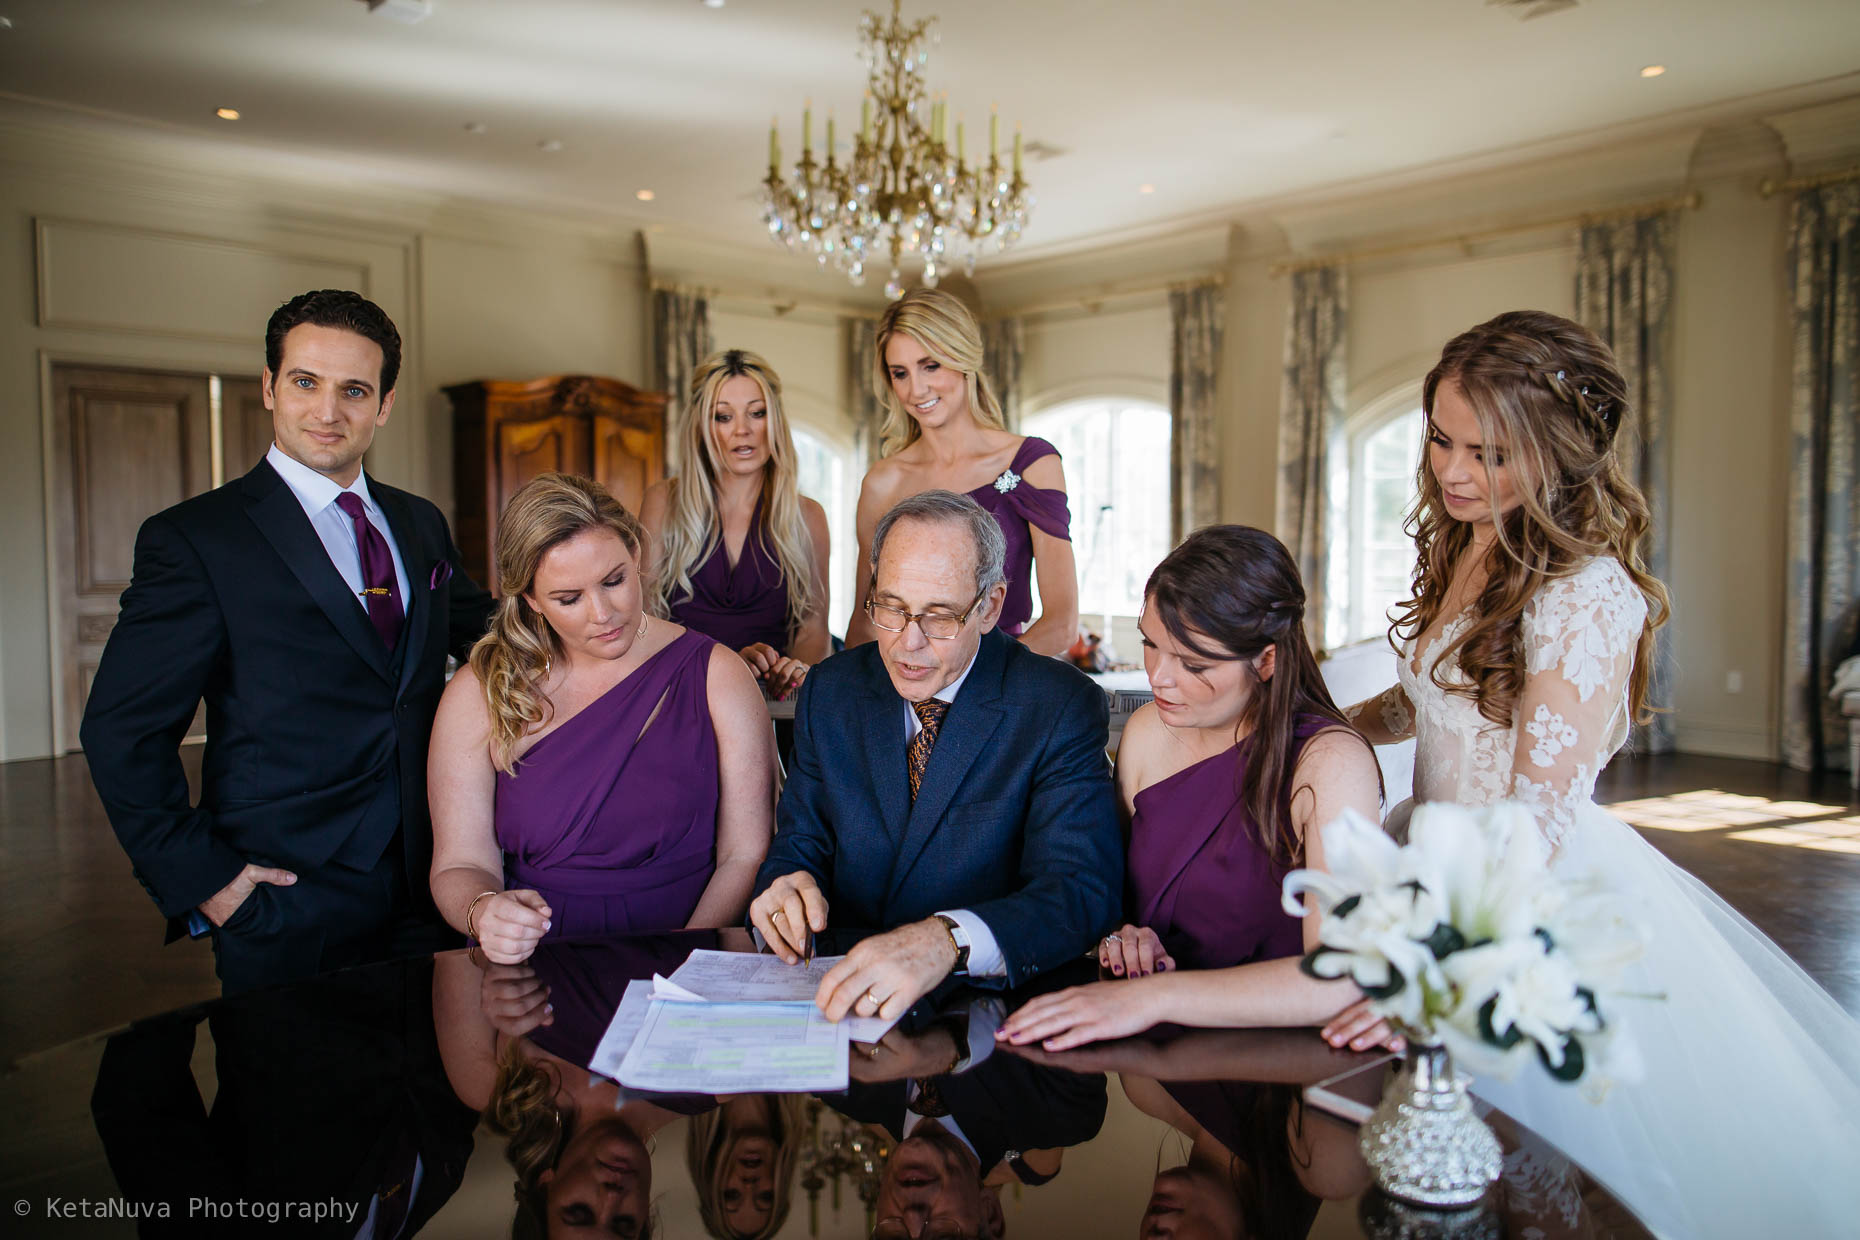 The signing of the marriage certificate. Park Chateau, NJ.